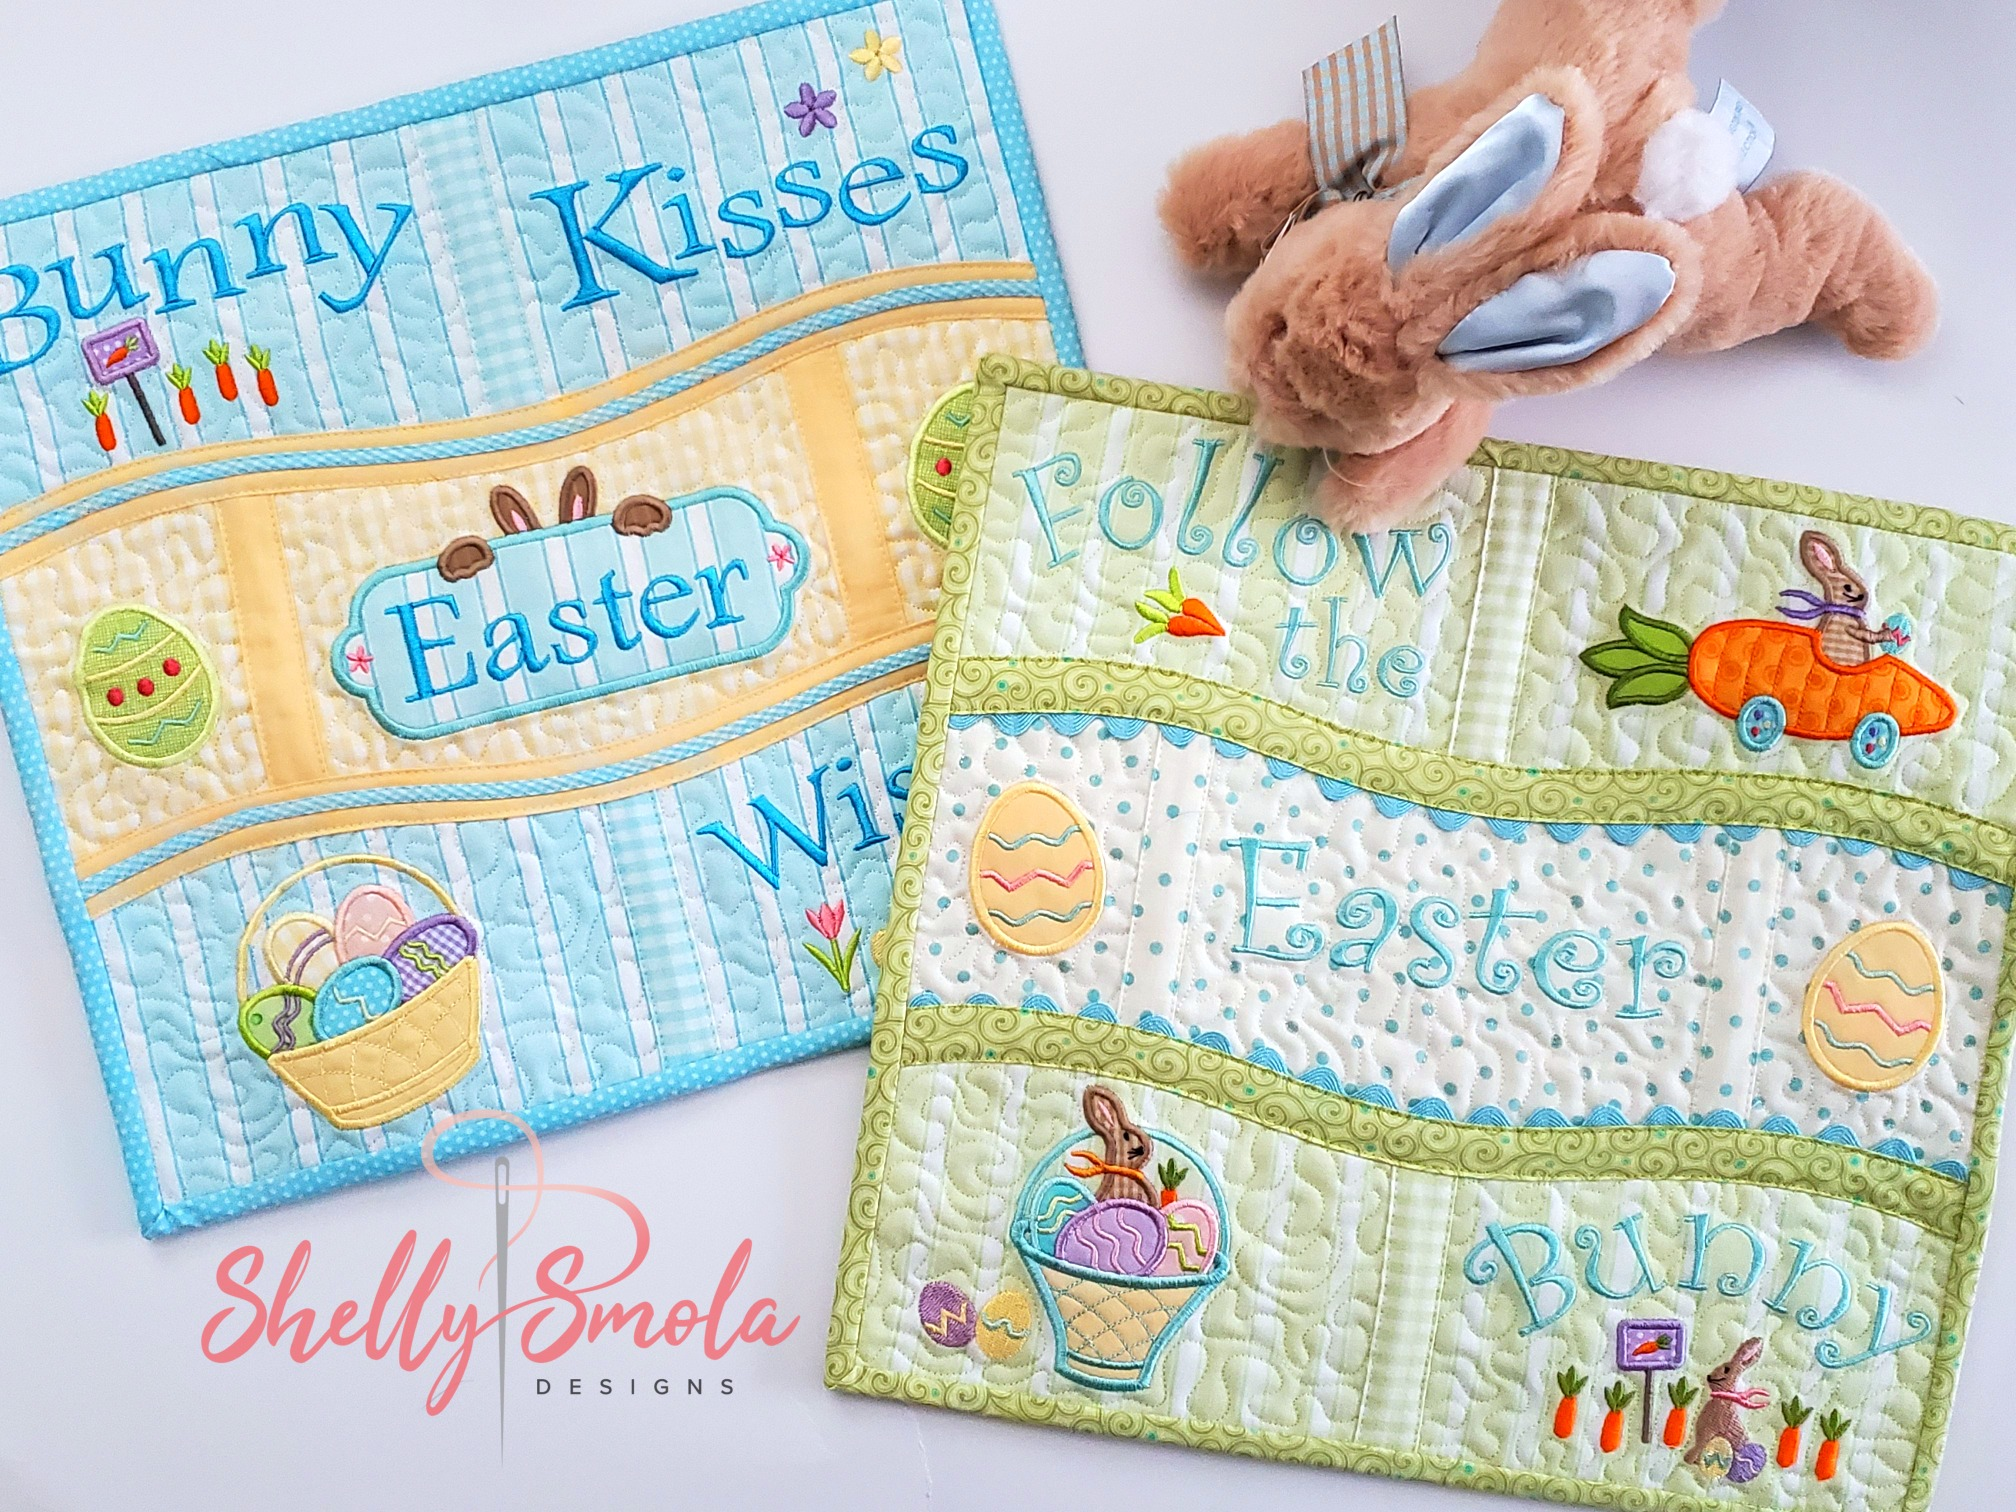 Bunny Kisses Placemats by Shelly Smola